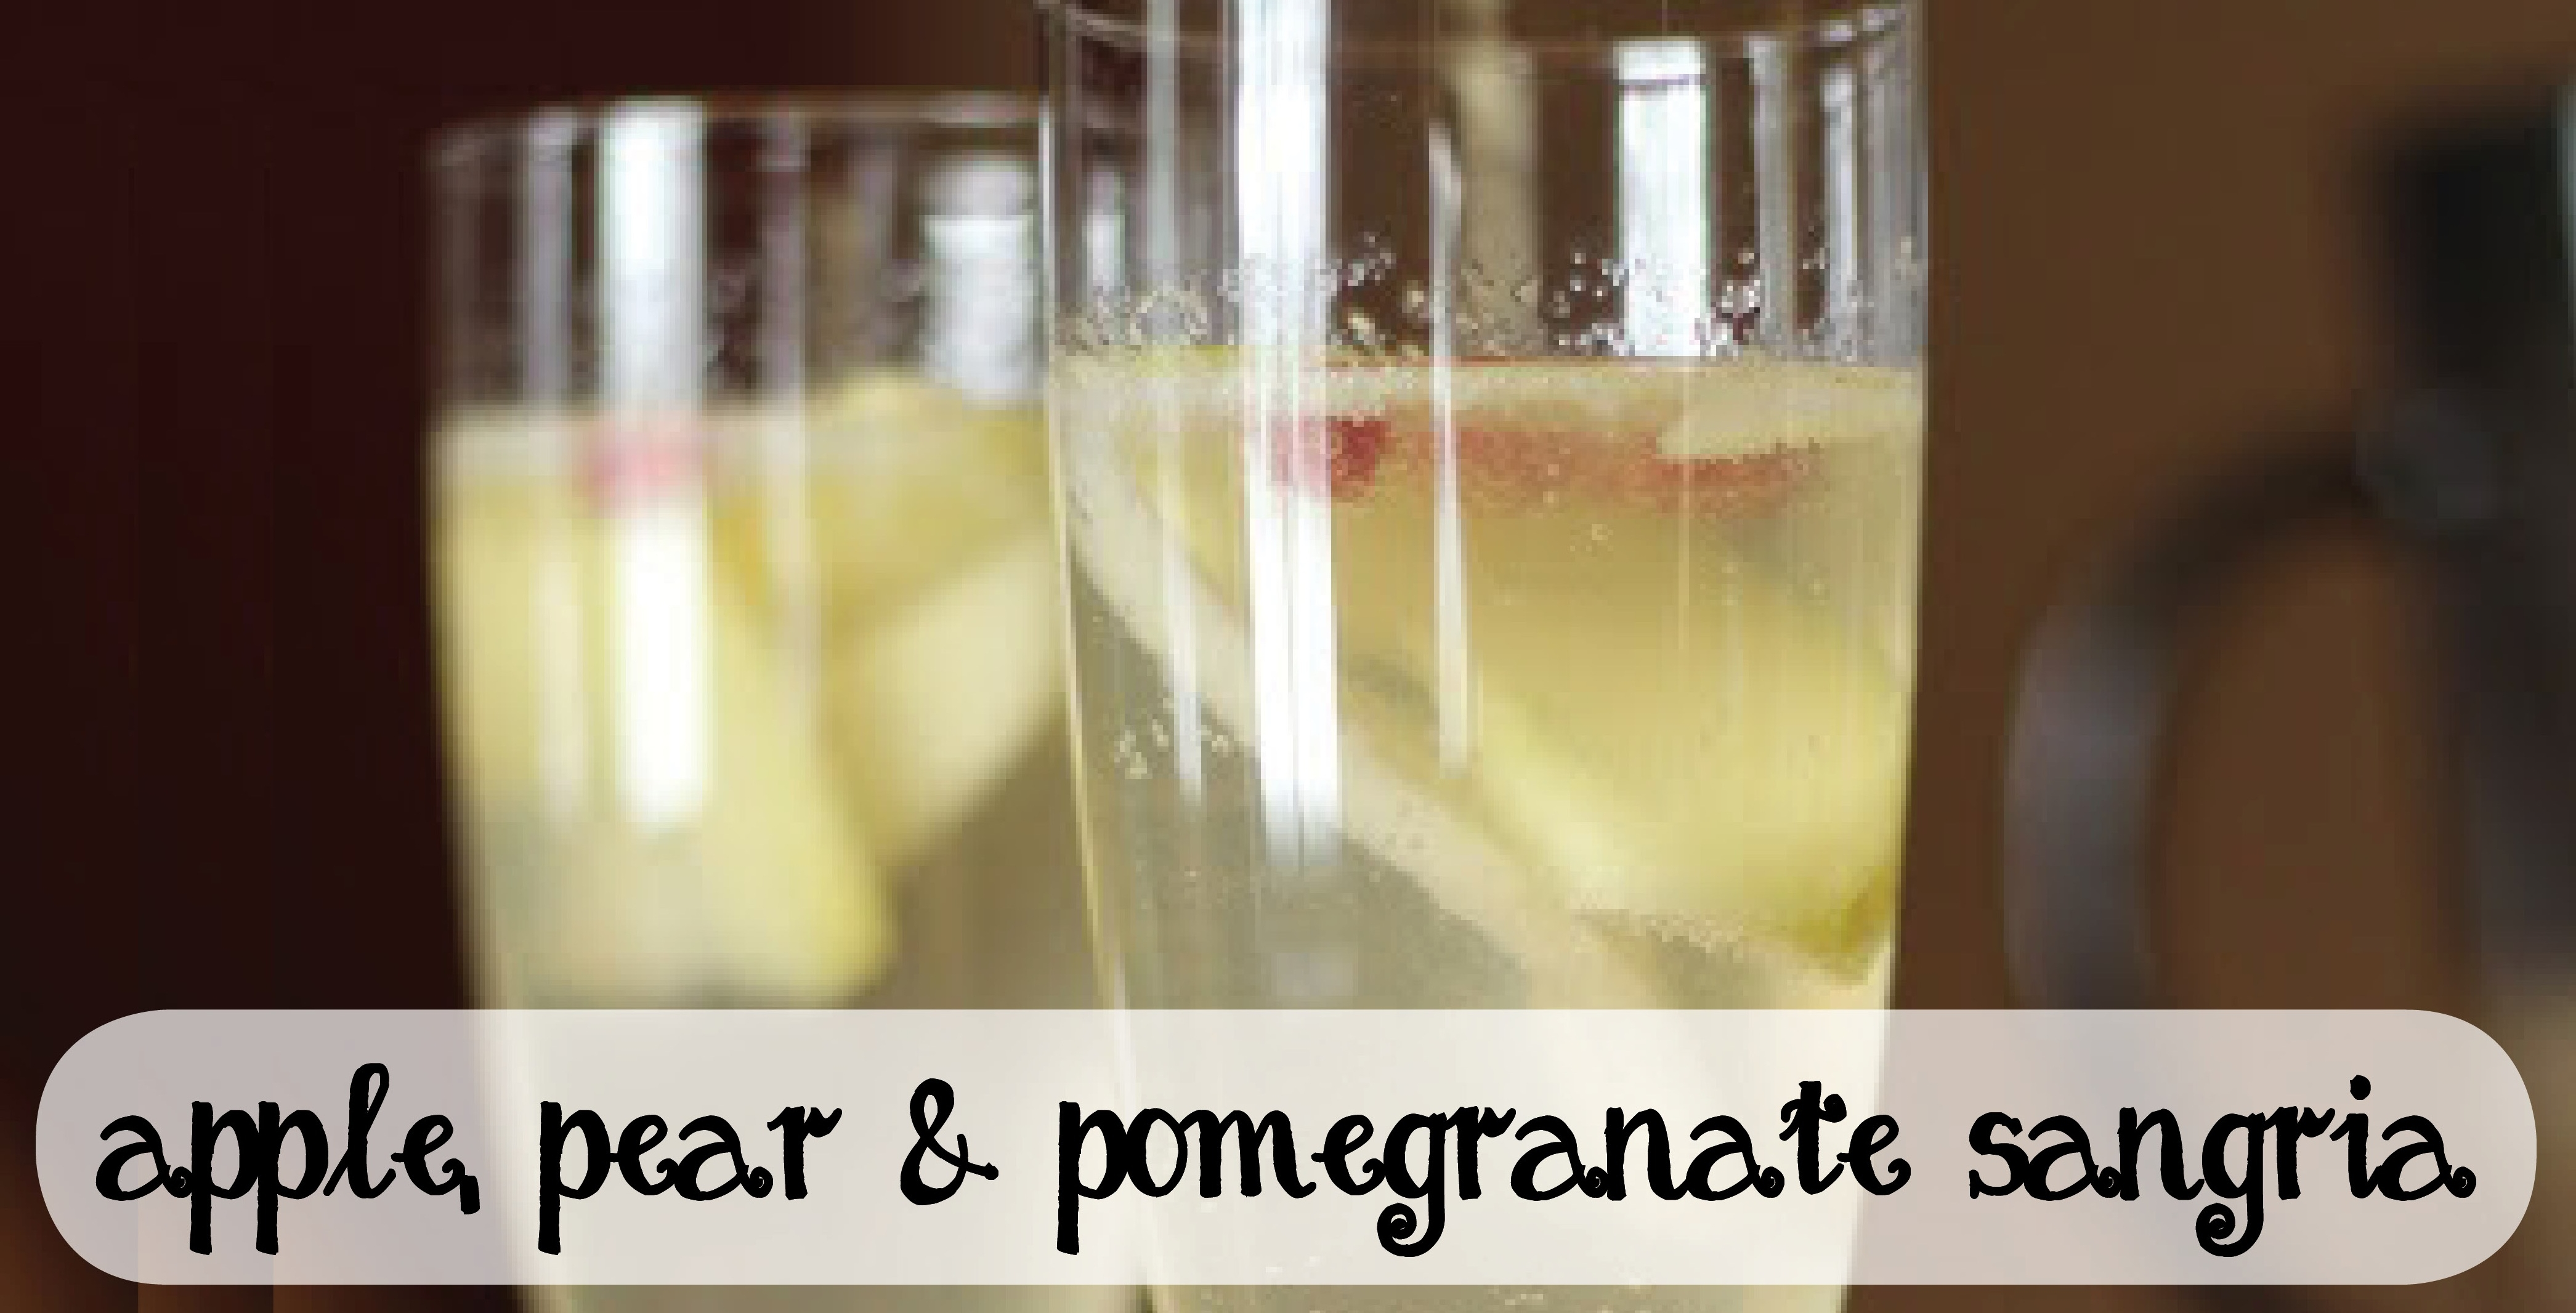 apple pear and pomegranate sangria